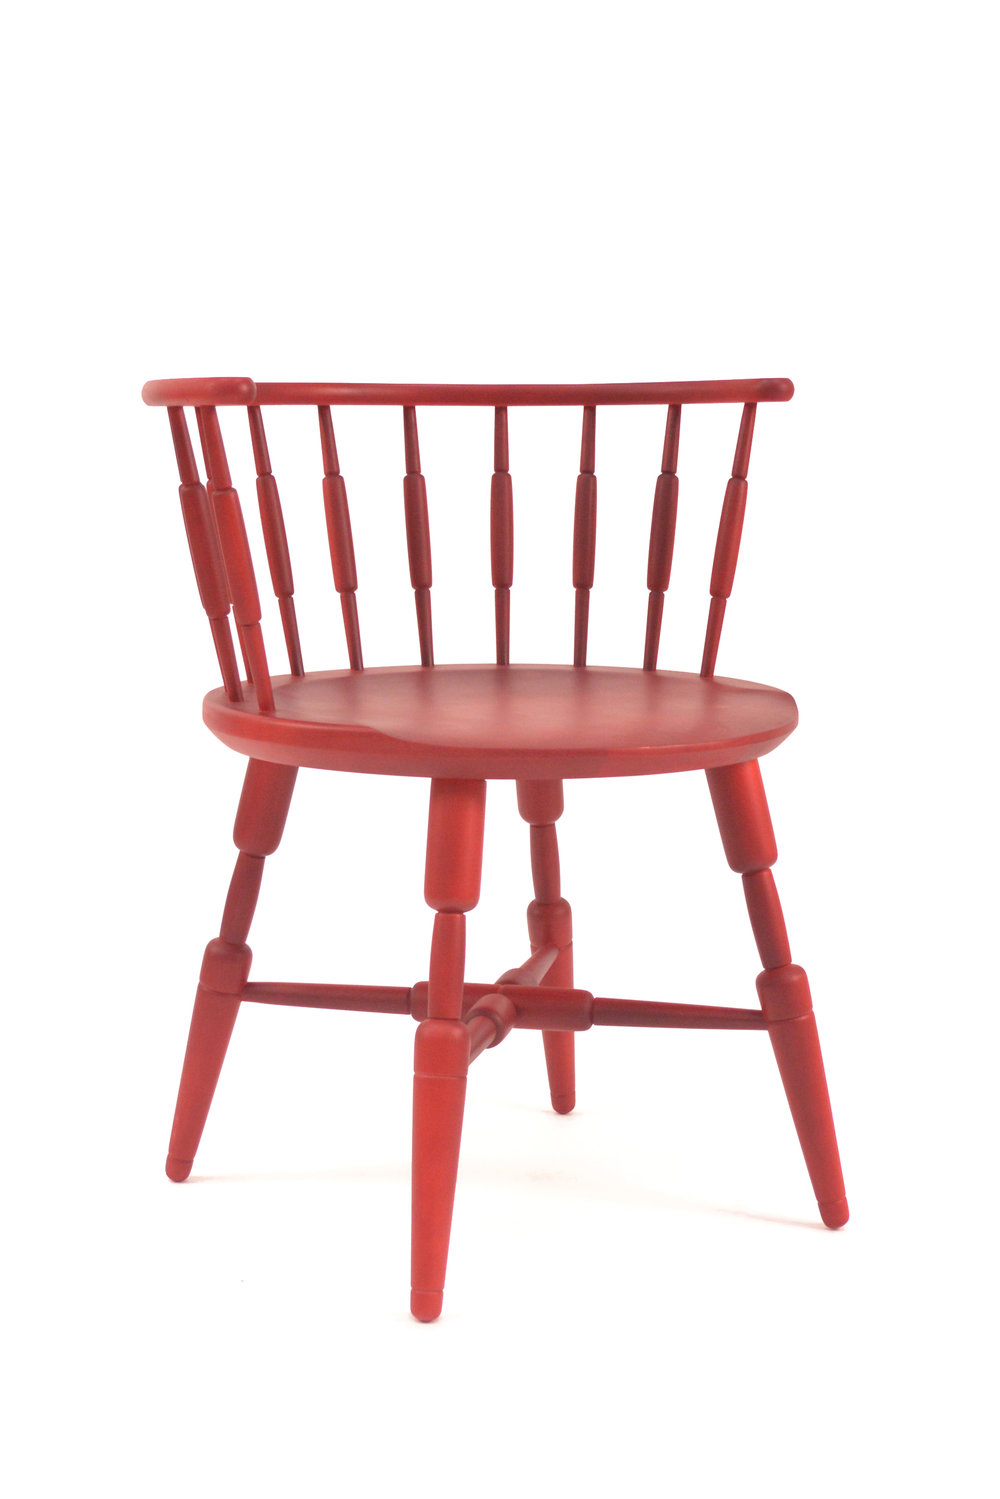 "Sausage Link Chair is a take on a traditional low back windsor chair. The spindles and seat are manipulated to appear soft and malleable, such as the transitioning fleshy weight seen in sausage links.  Materials: Dyed Hard Maple  H 29"" x L 22"" x W 24"""